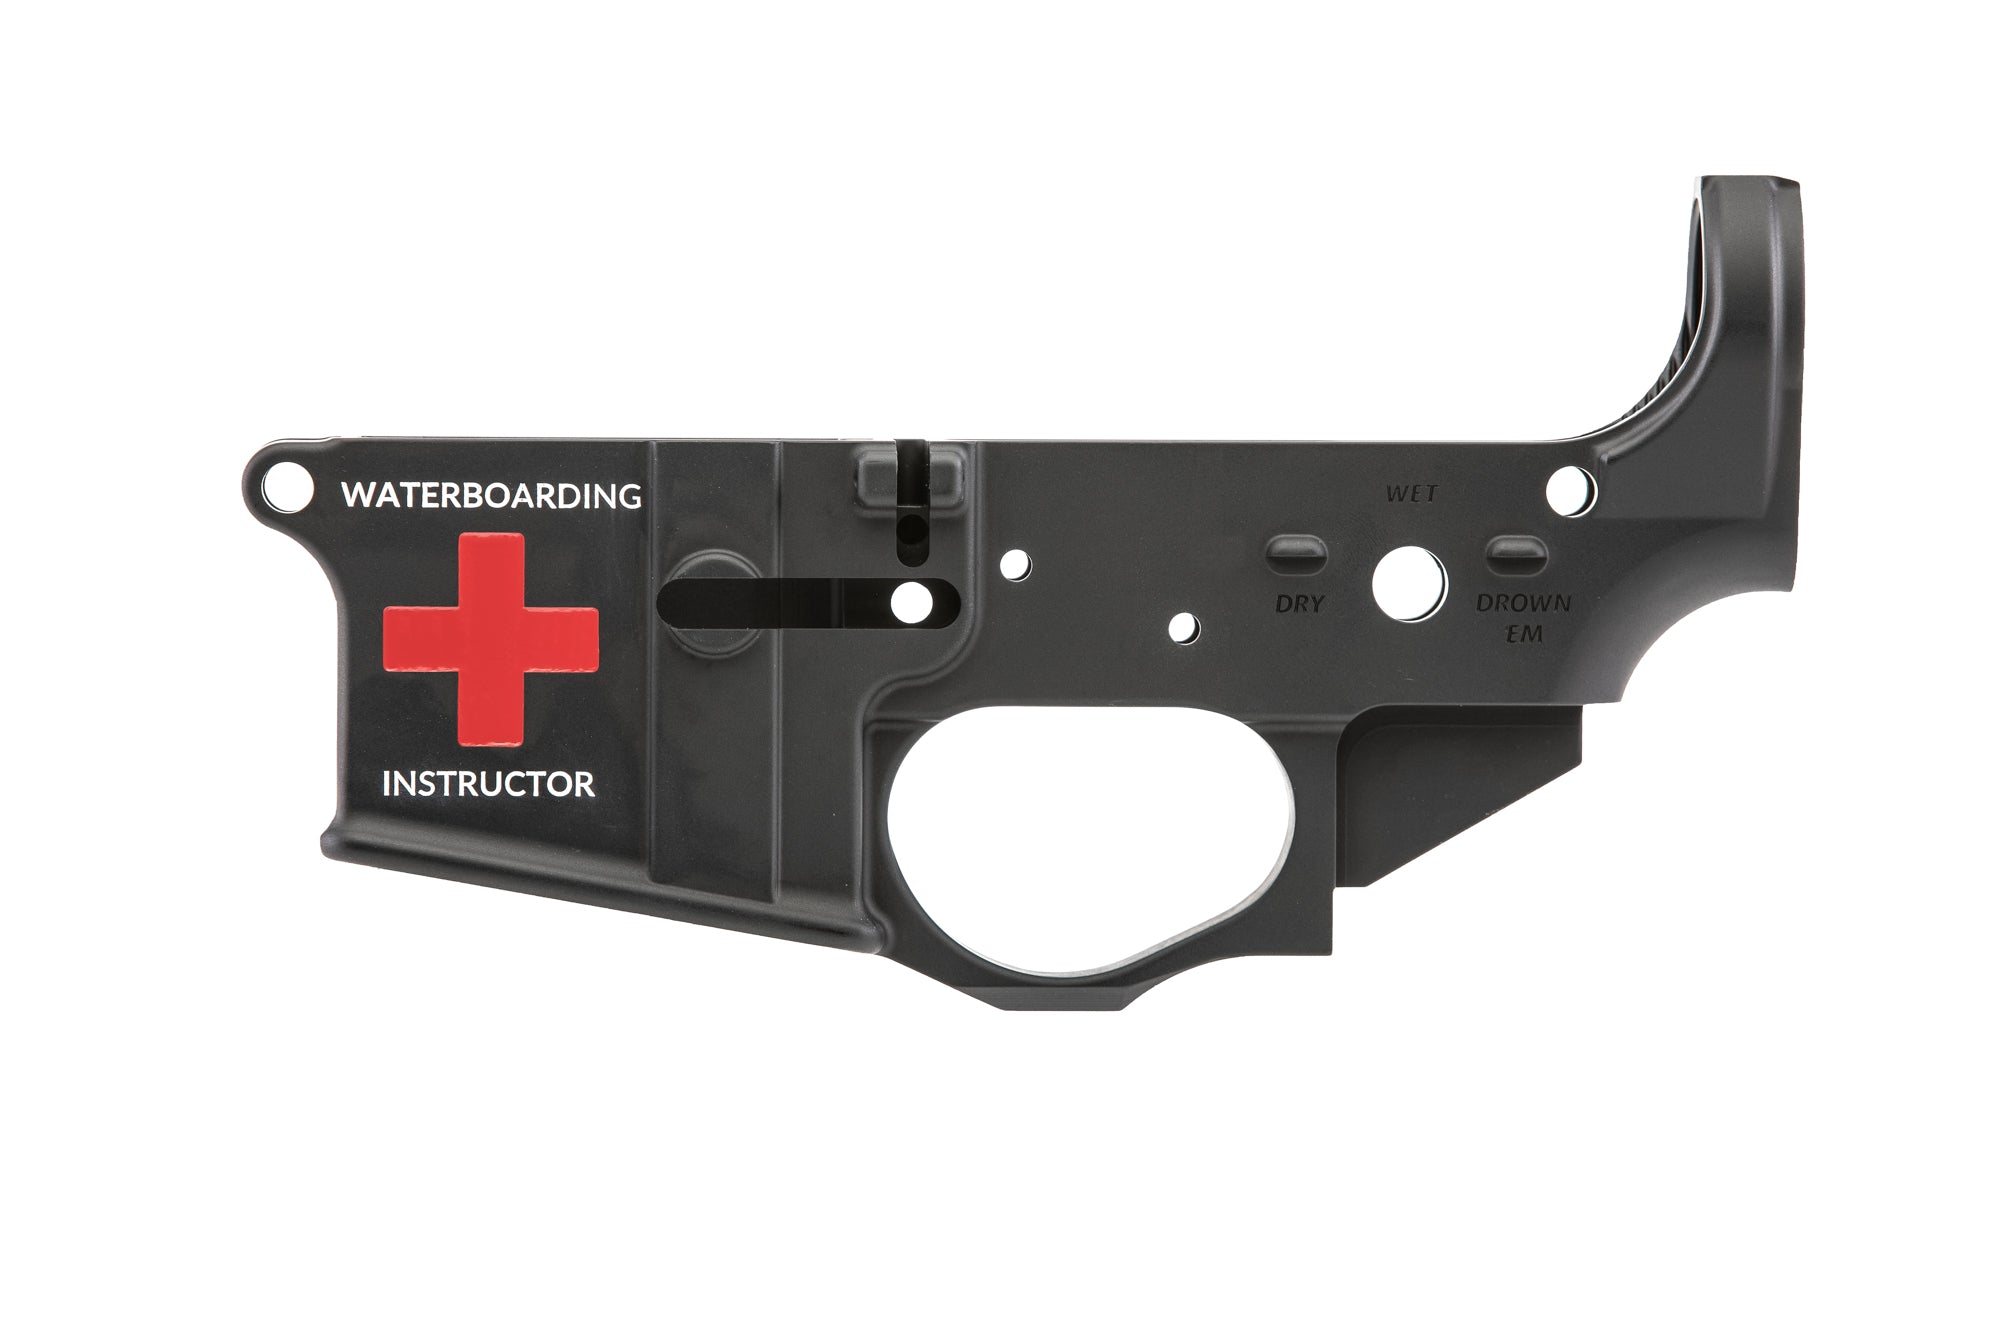 Waterboarding Instructor Lower Receiver